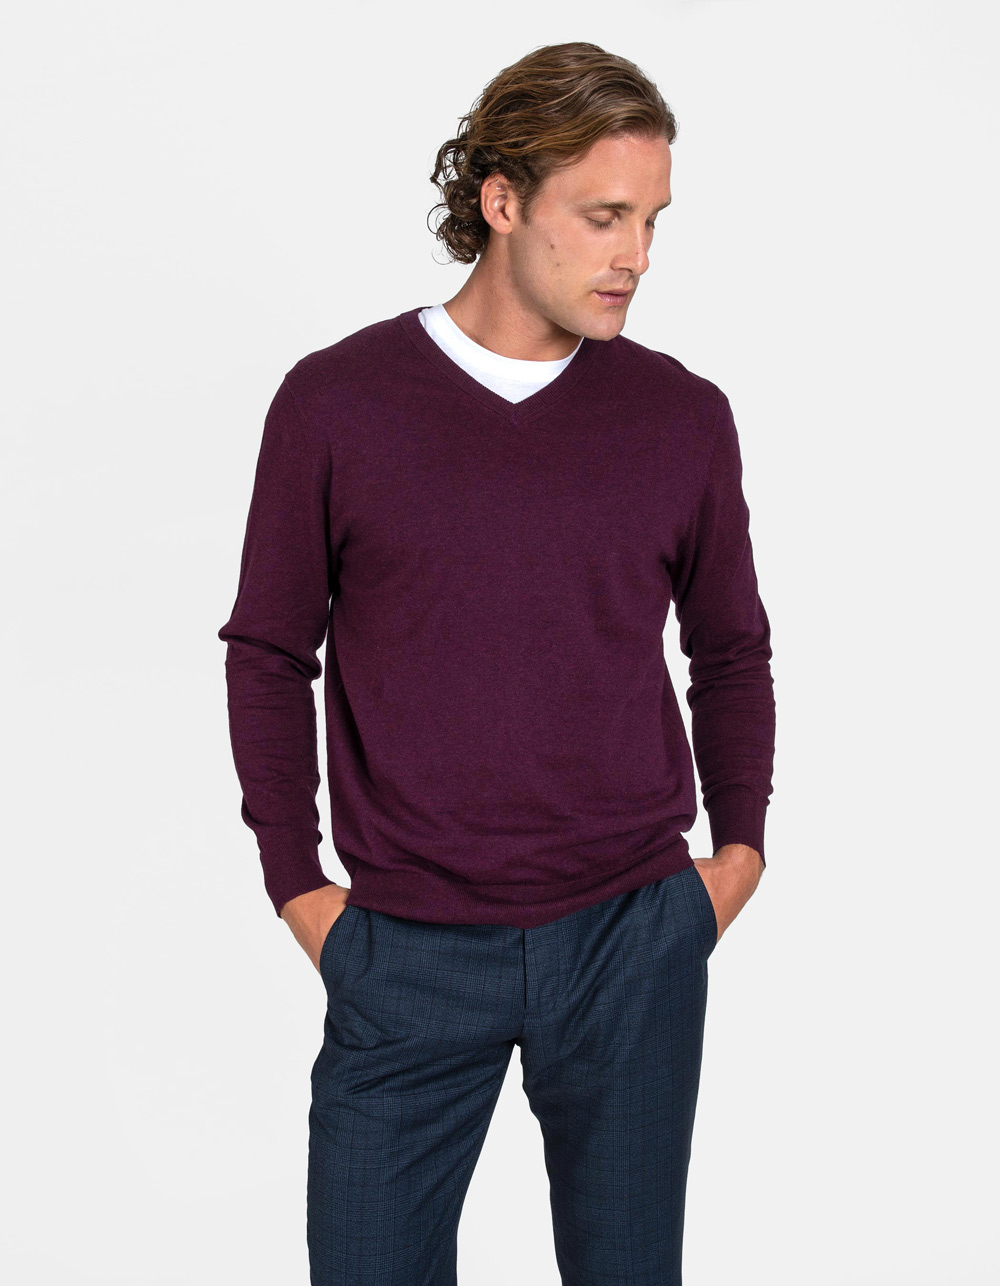 Bordo v-neck sweater